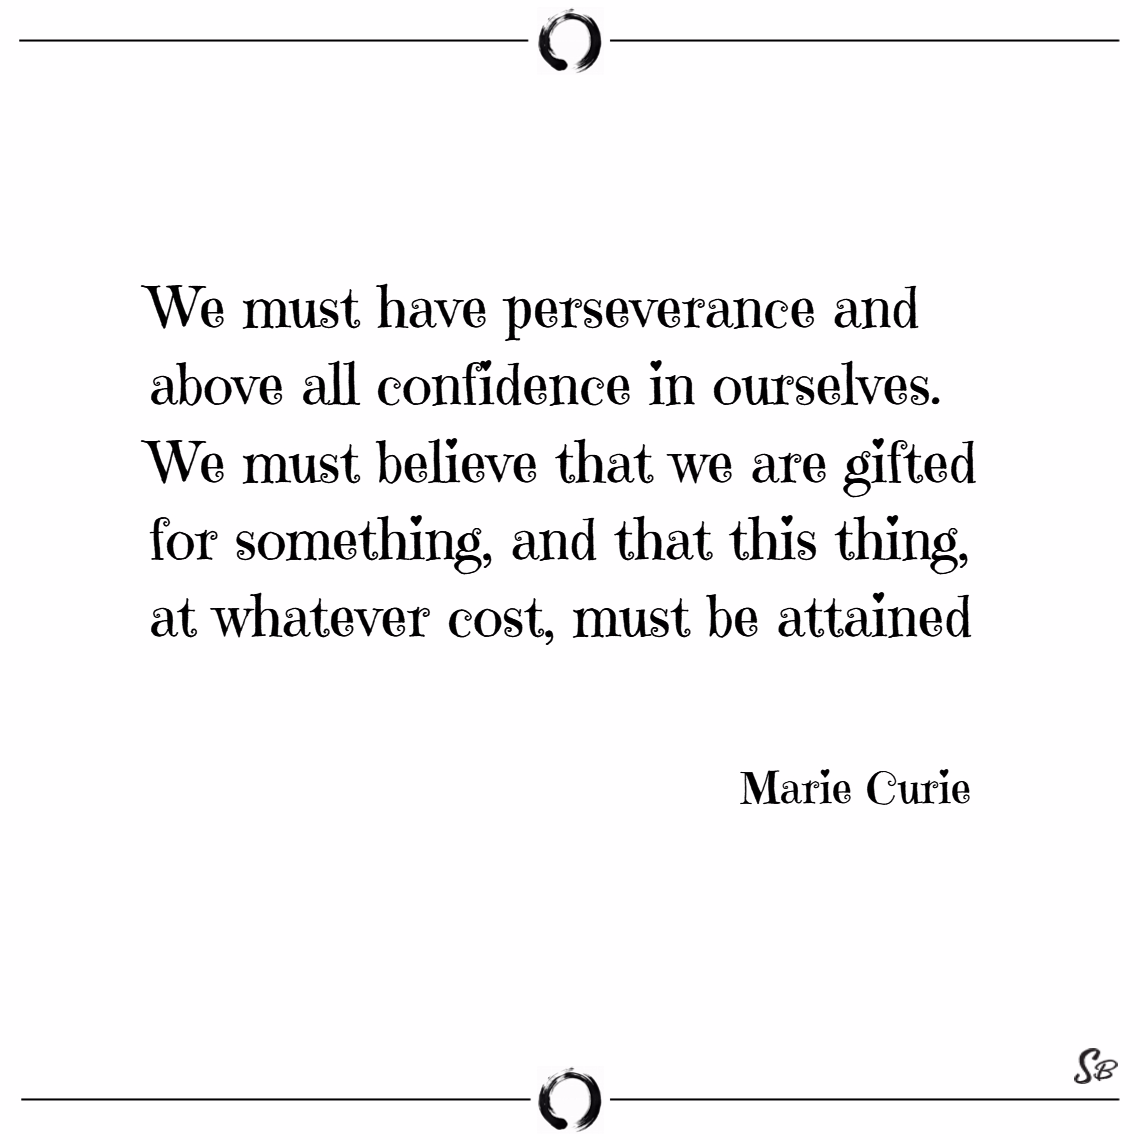 We must have perseverance and above all confidence in ourselves. – marie curie